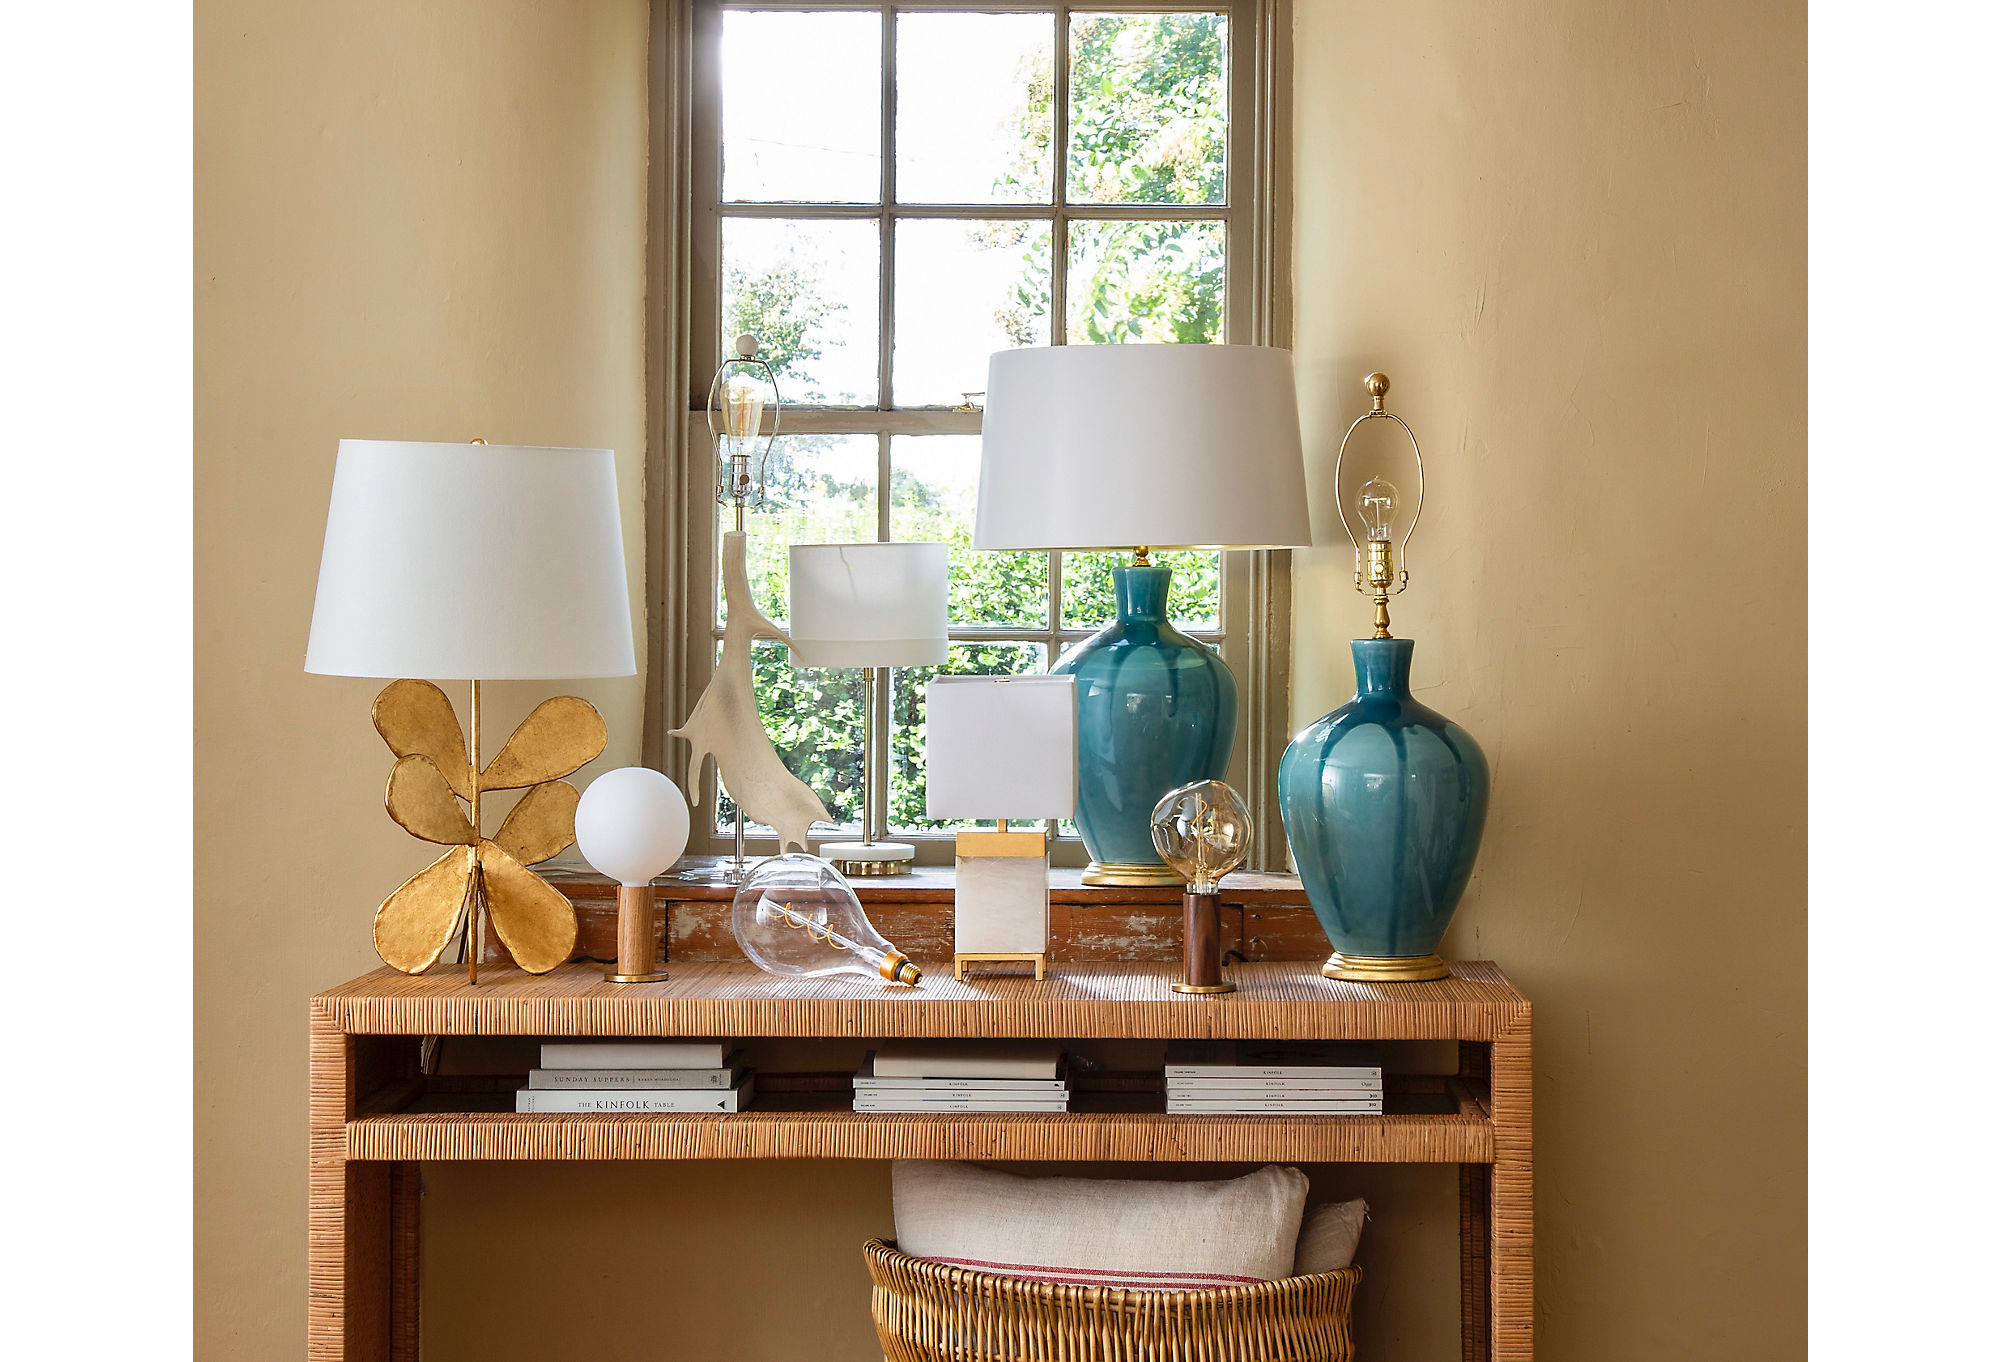 Table lamps are among the most versatile light fixtures out there. Think of them as objets or pieces of art. Lamps shown on the table above, from left: Jane Petal Table Lamp, Knuckle Matte Table Lamp in Oak/Brass, Jillian Table Lamp, Knuckle Clear Table Lamp in Walnut/Brass, and Gisele Drip Table Lamp.